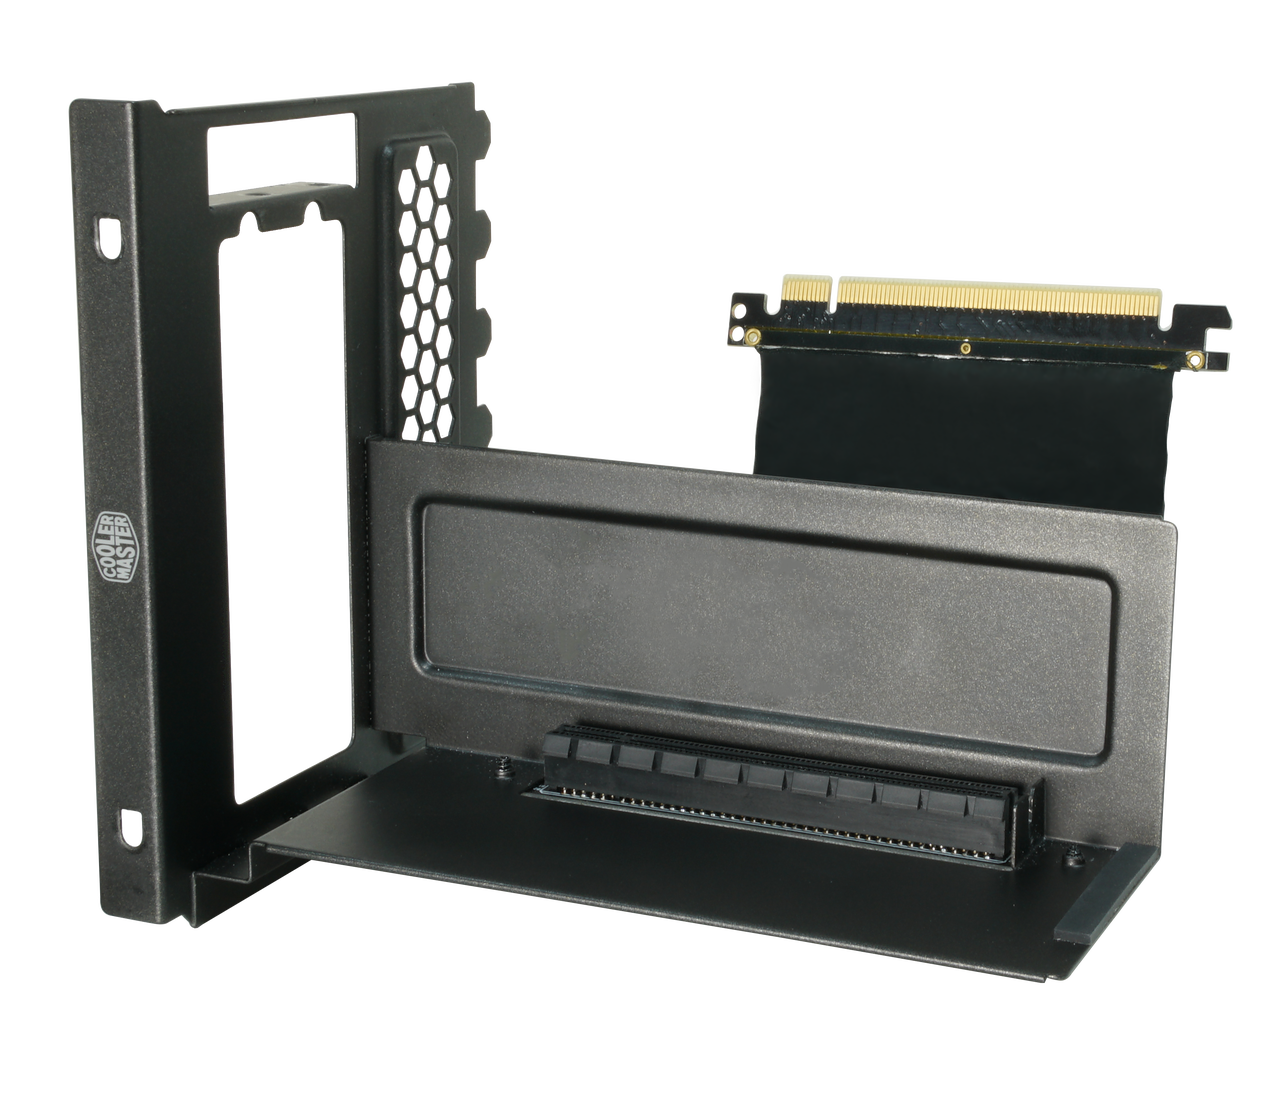 Cooler Master MasterAccesory – Vertical GPU Holder With PCI-E Riser - Ban Leong Technologies Limited